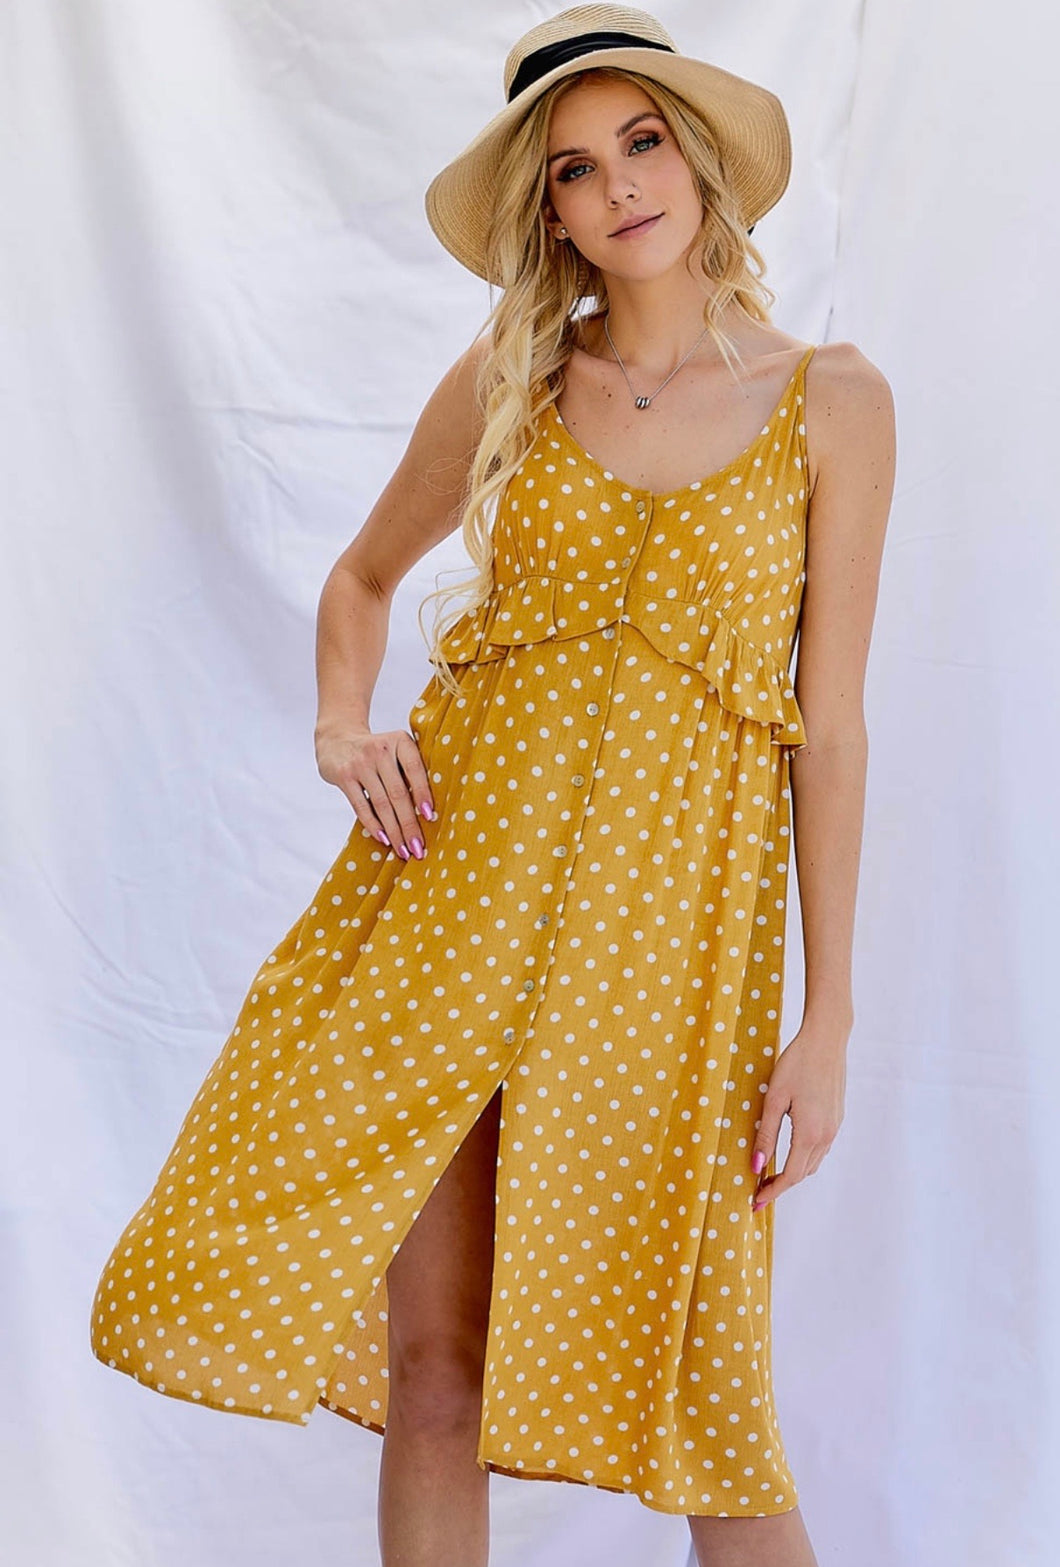 1421 - Mustard Polka Dot Dress